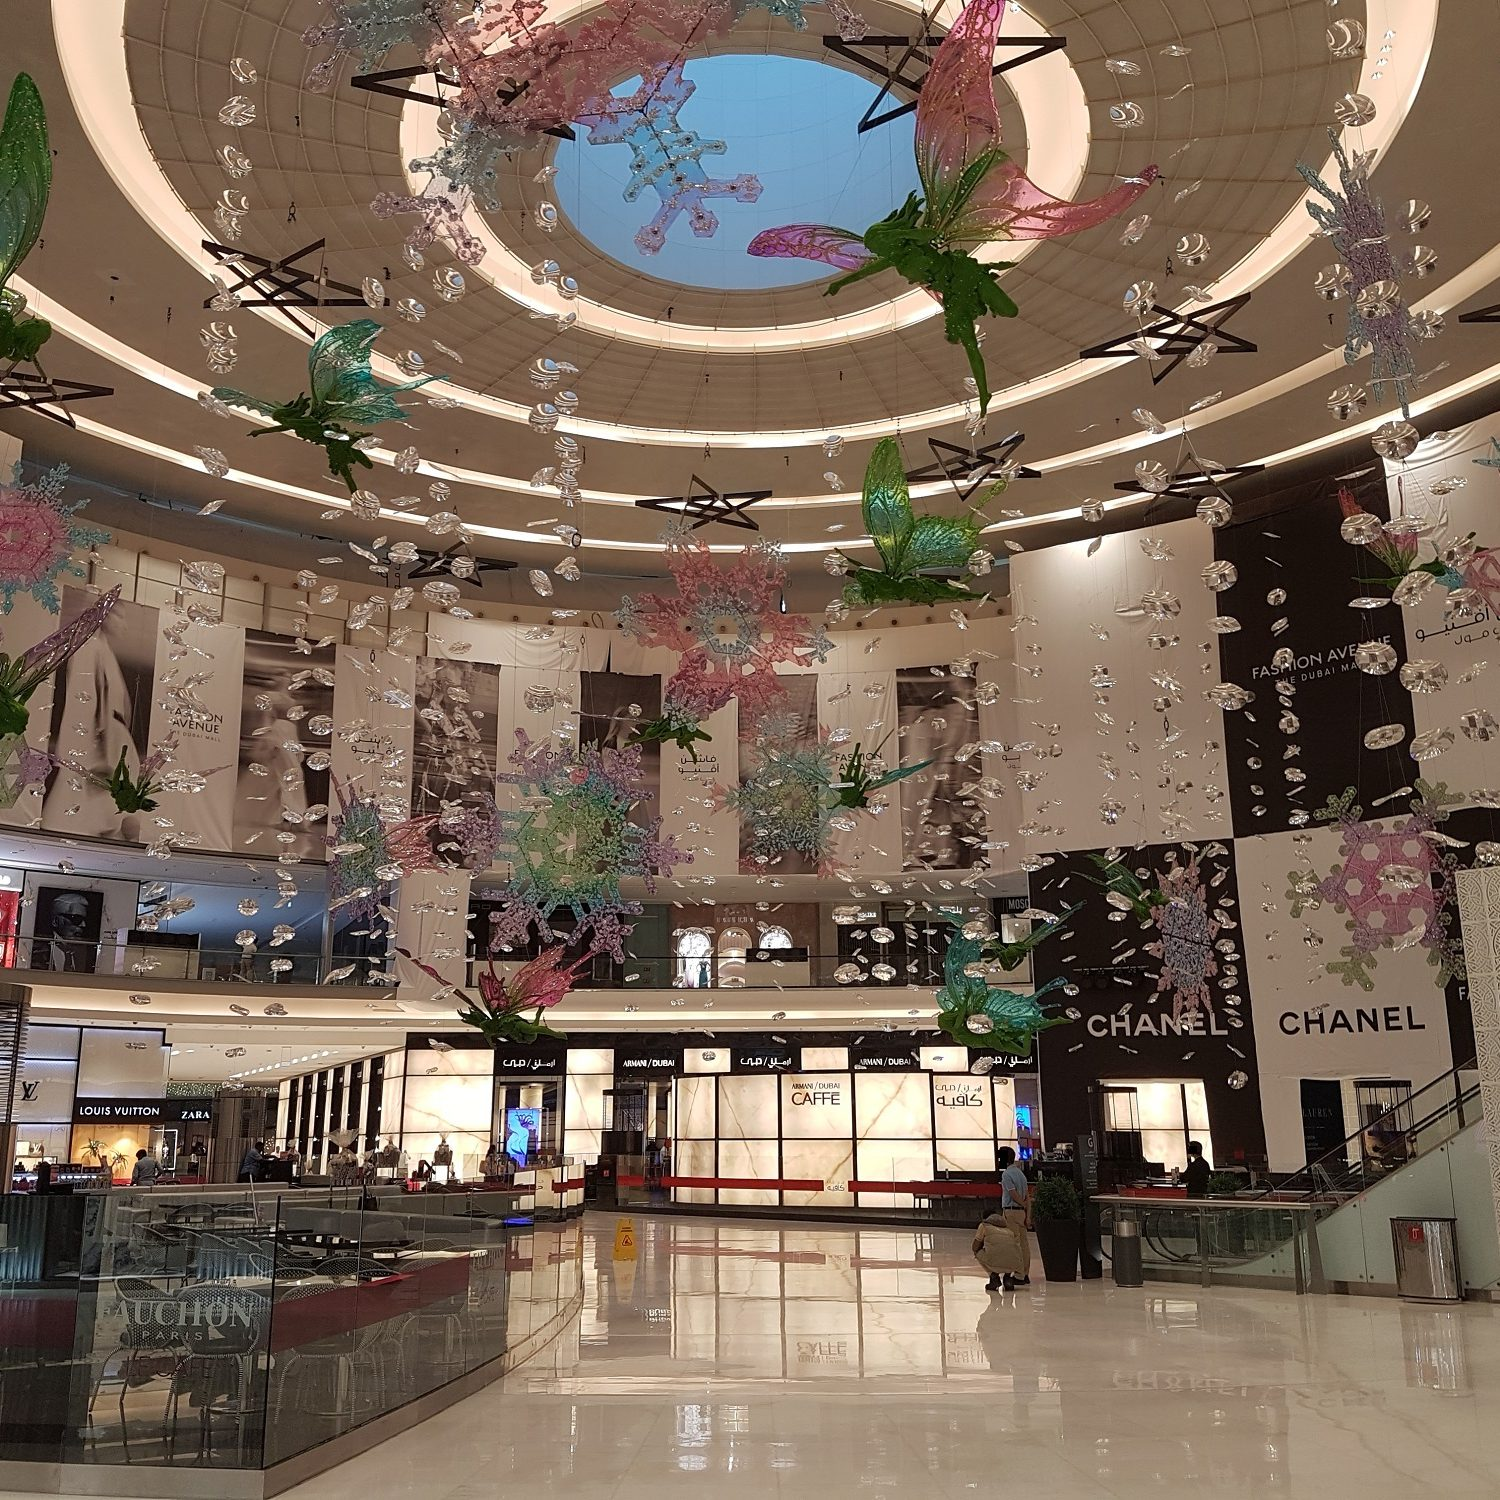 20181209 075352 1500x1500 1 – The Dubai Mall - A New Wonderland of Shopaholics